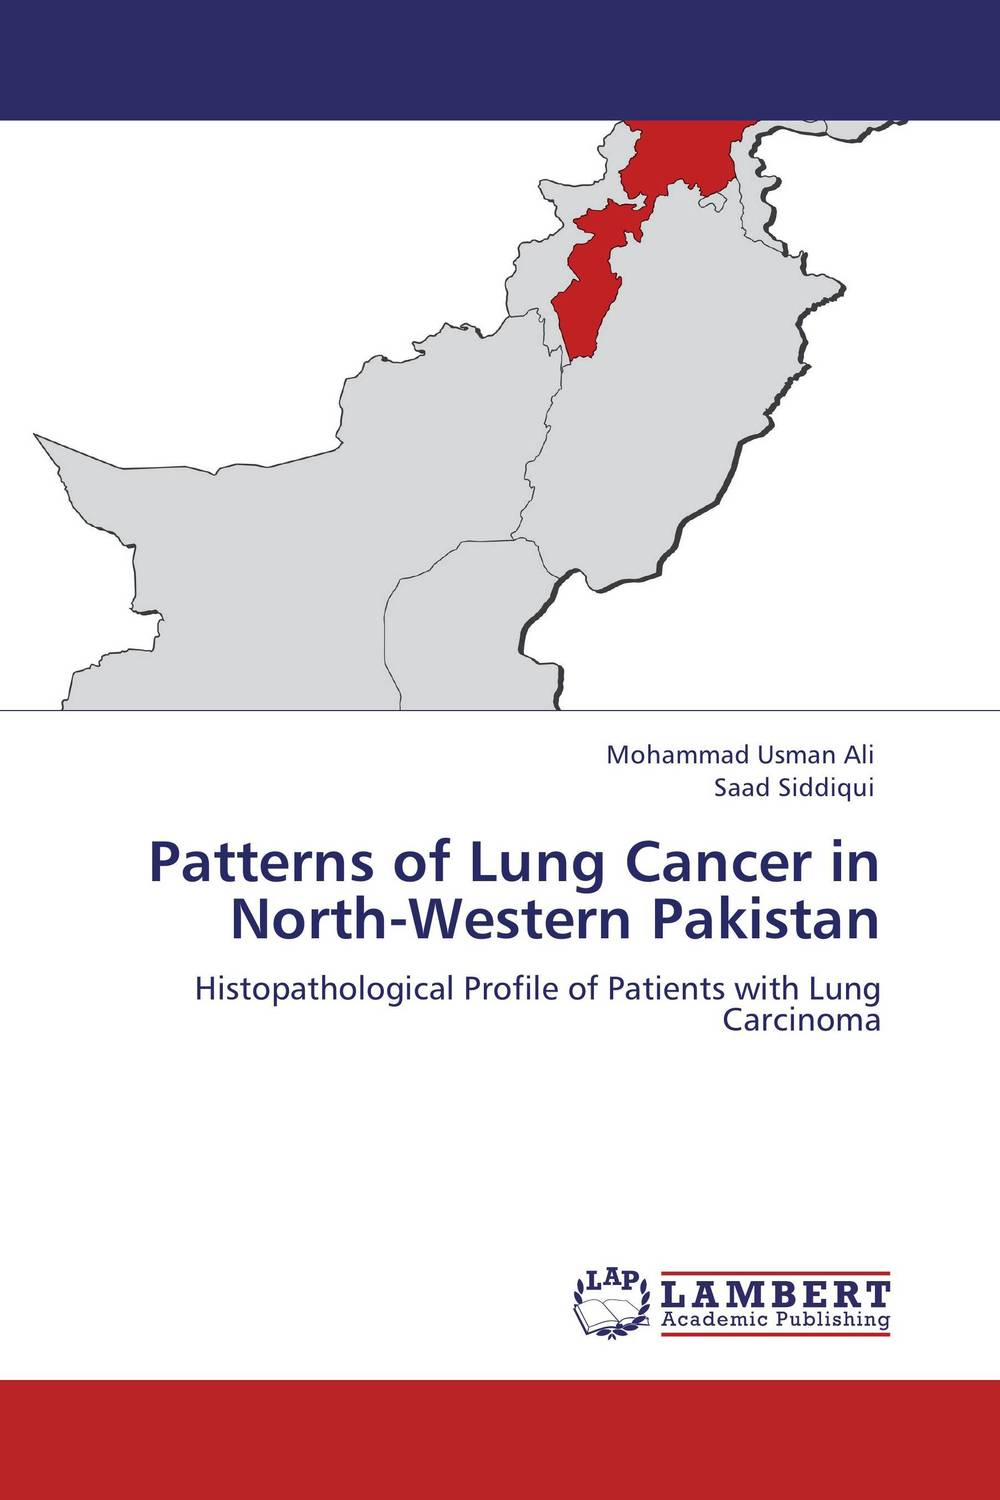 Фото Patterns of Lung Cancer in North-Western Pakistan cervical cancer in amhara region in ethiopia